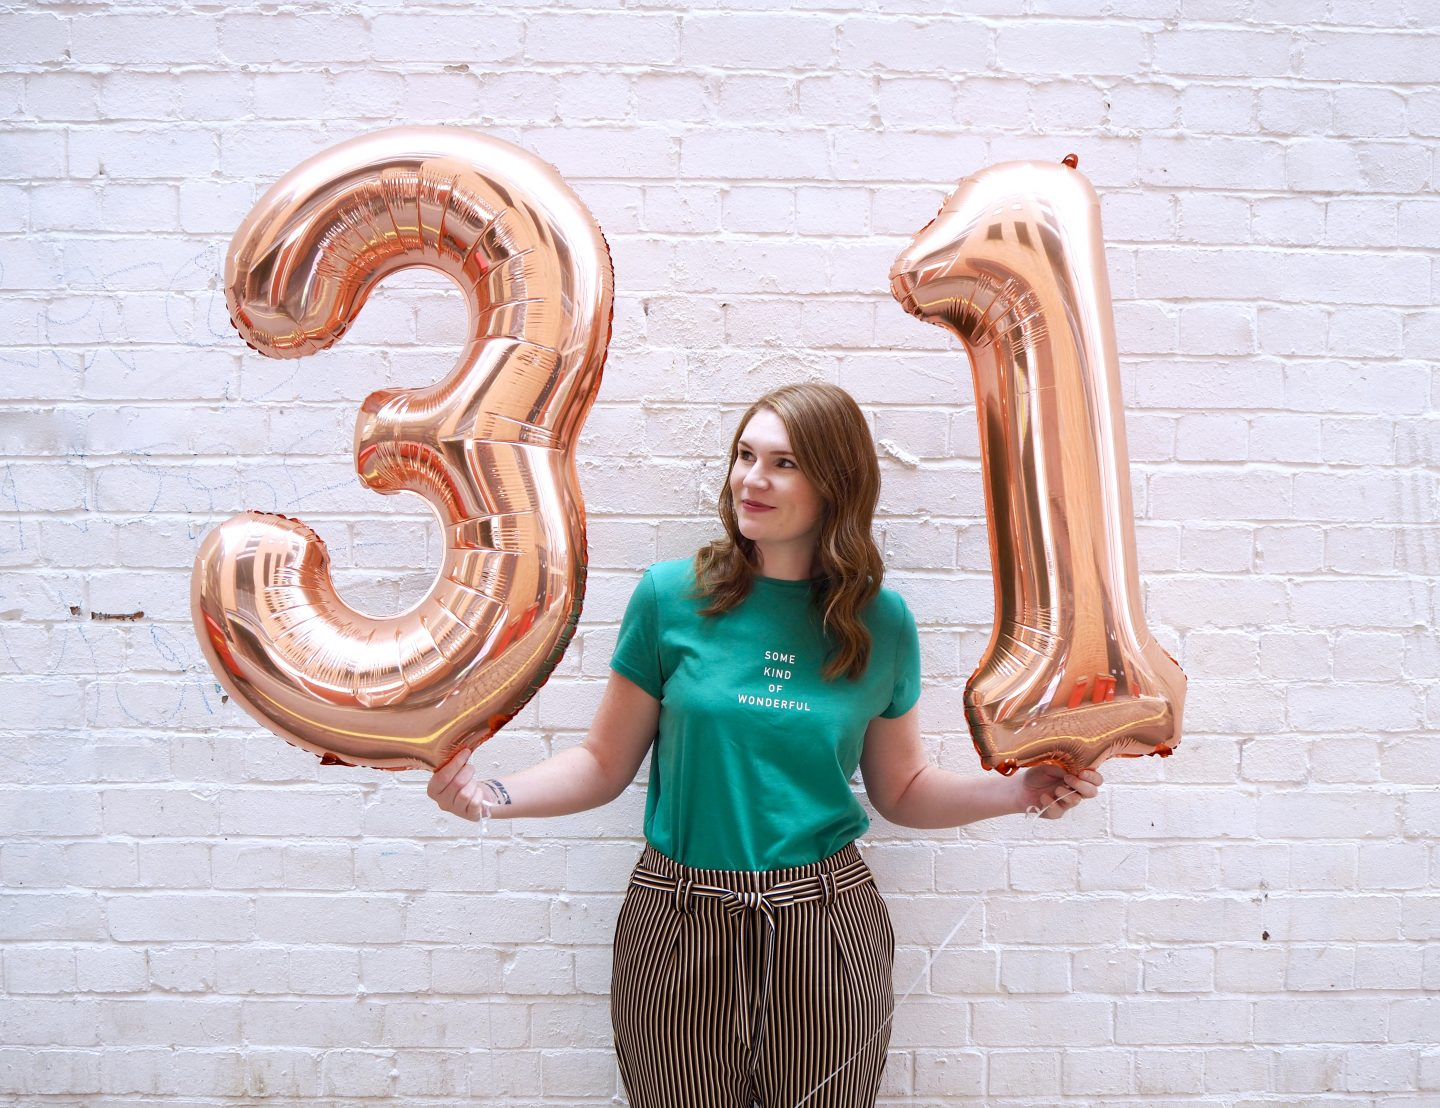 ON TURNING 31…